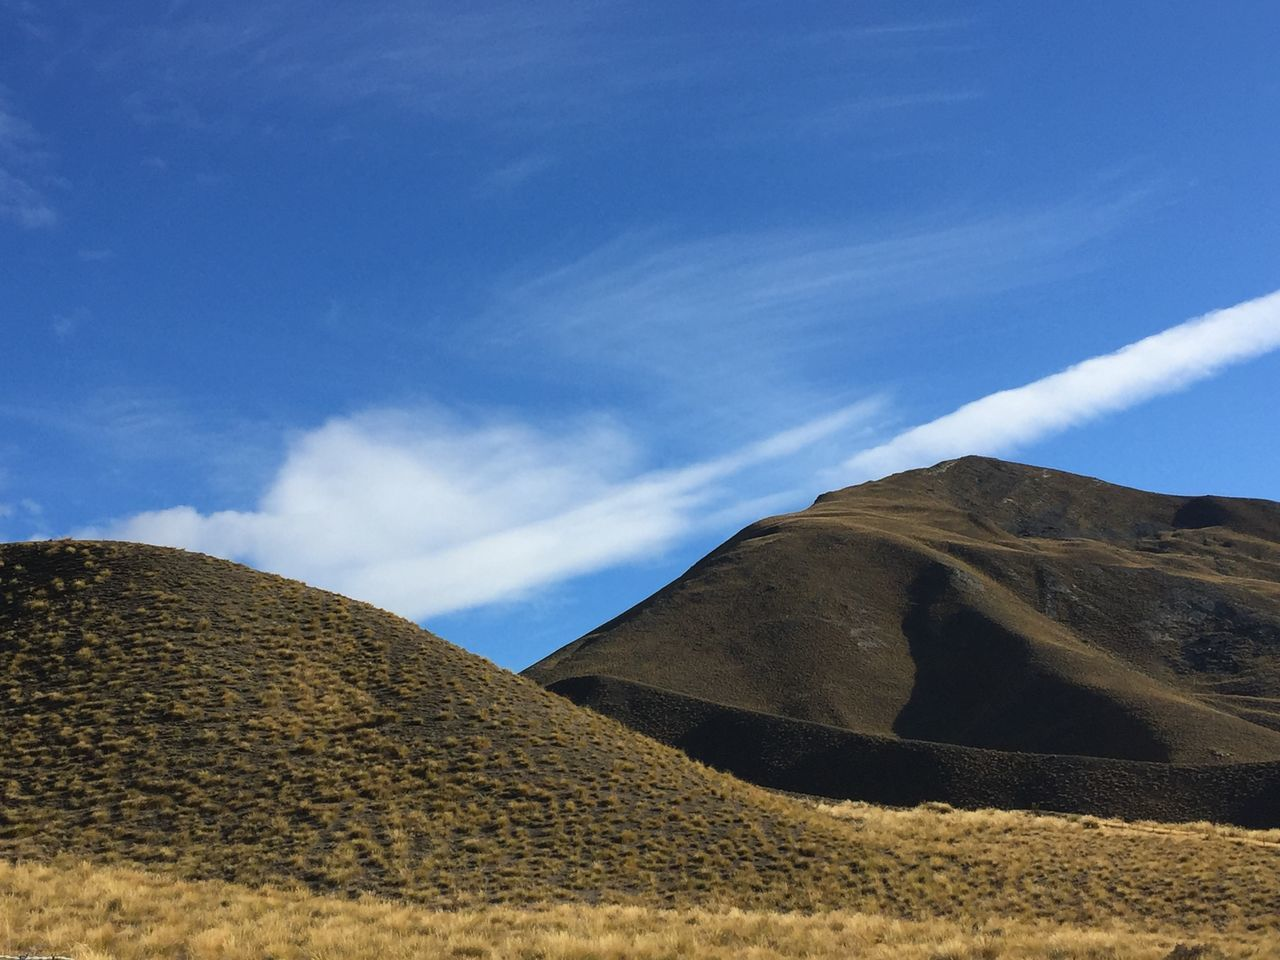 New Zealand Scenery Hill Country Blue Sky